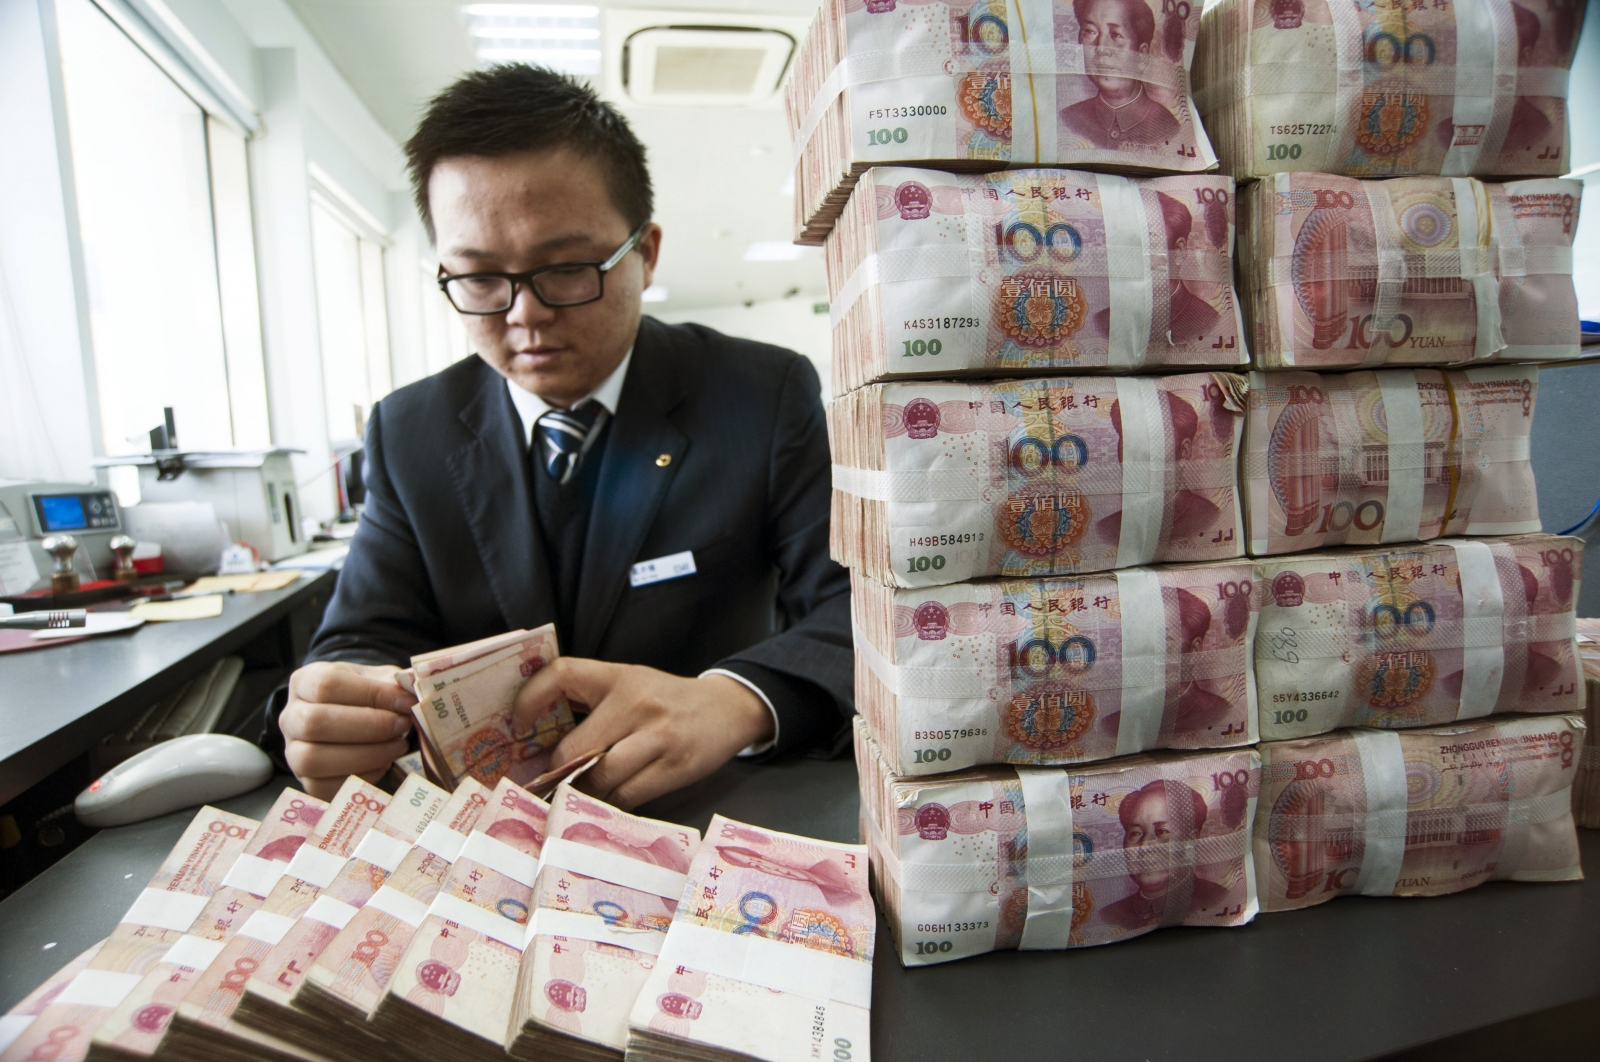 A clerk counts Chinese 100 yuan banknotes at a branch of China Construction Bank